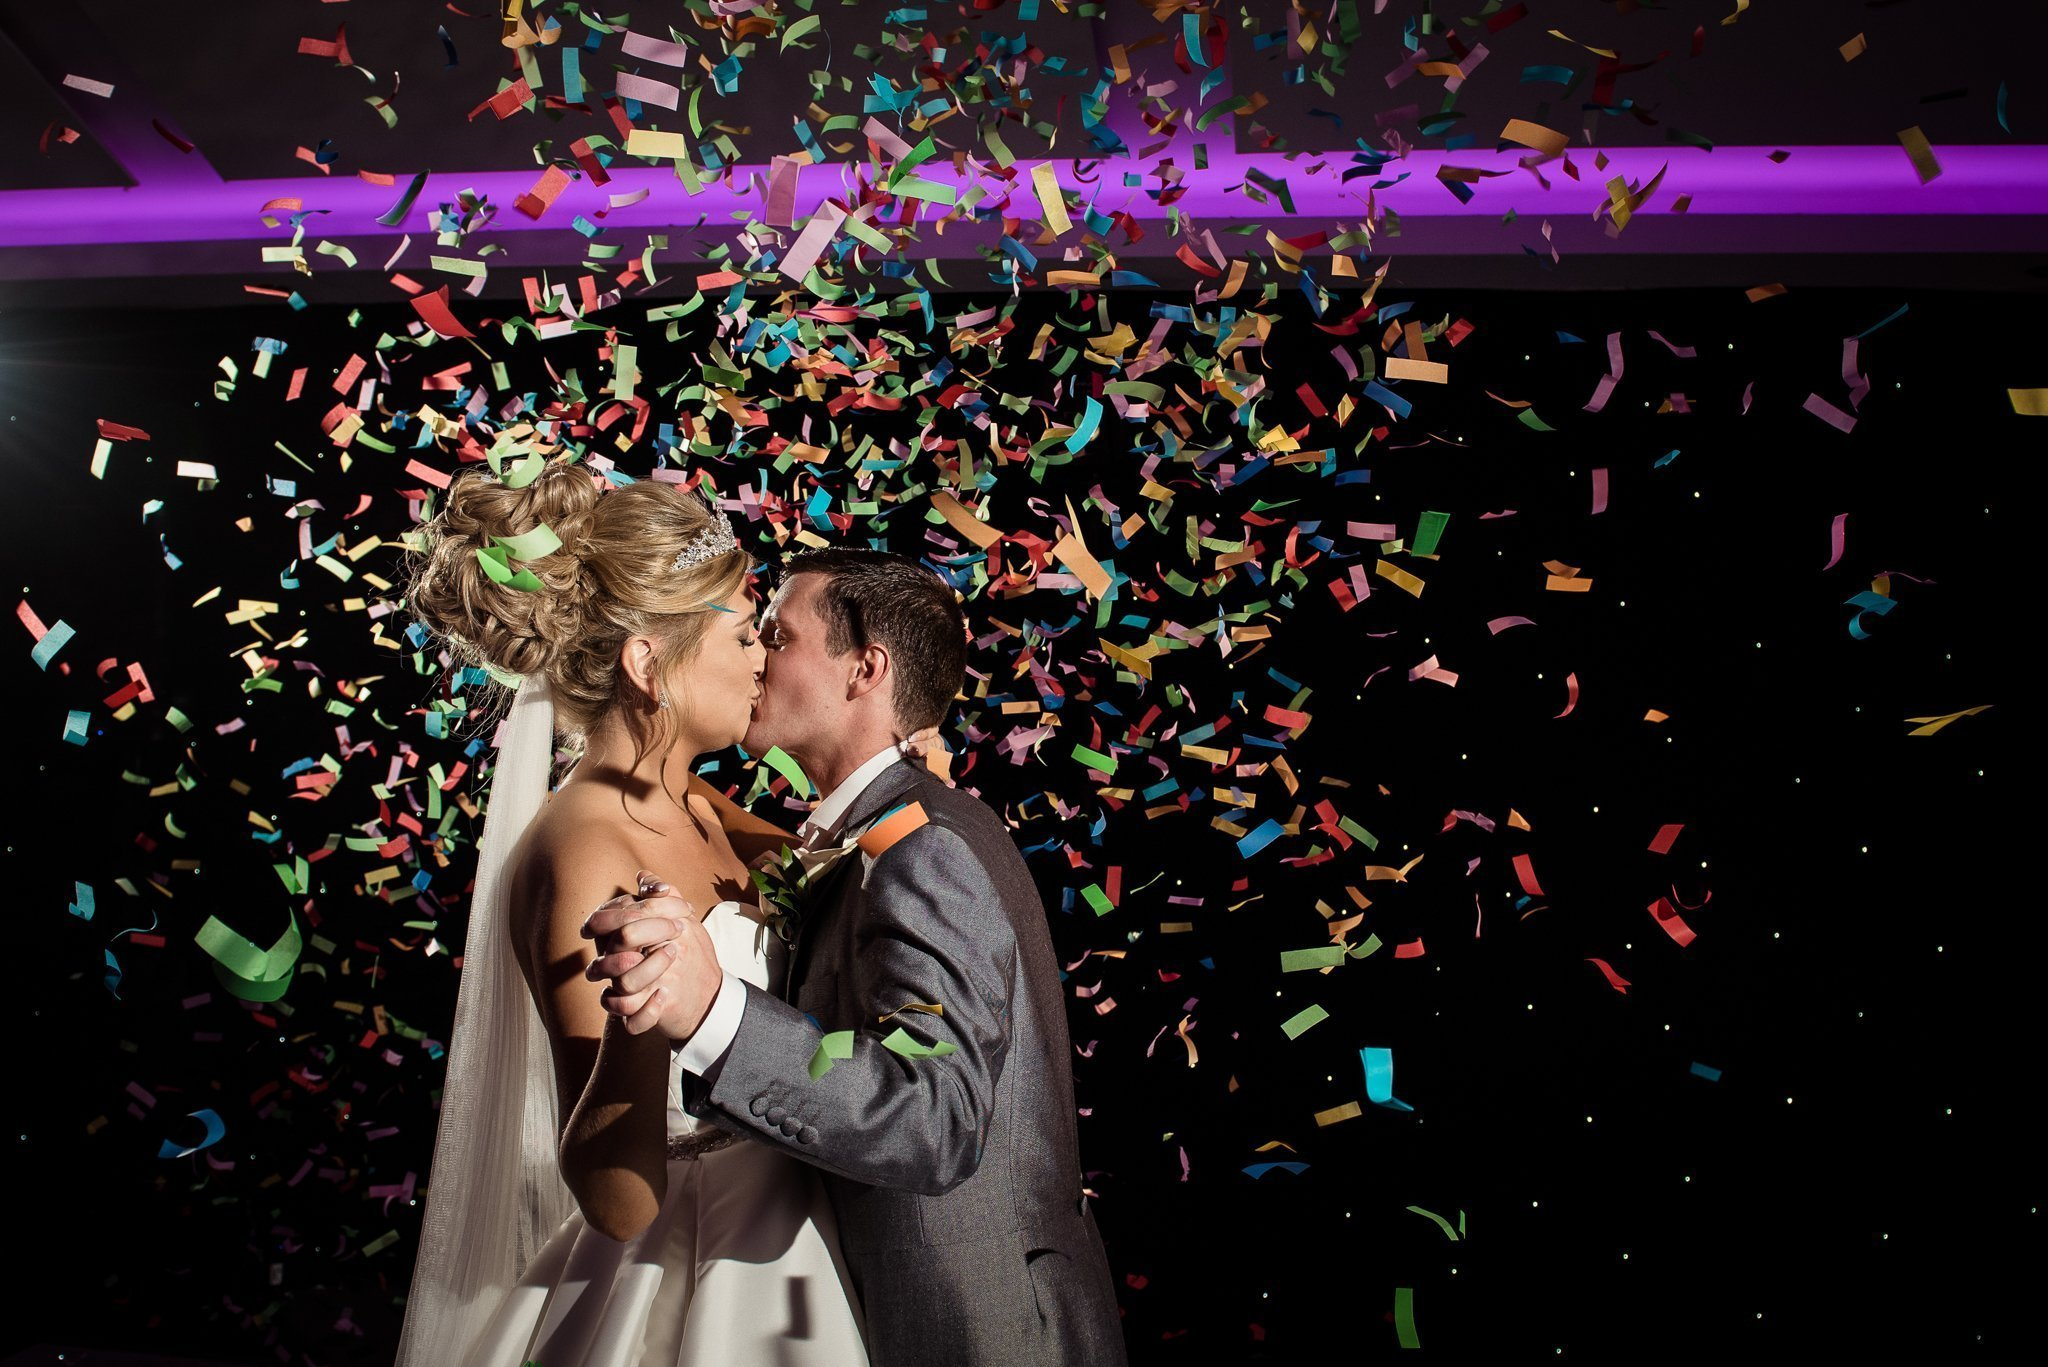 bride and groom confetti cannon during first dance